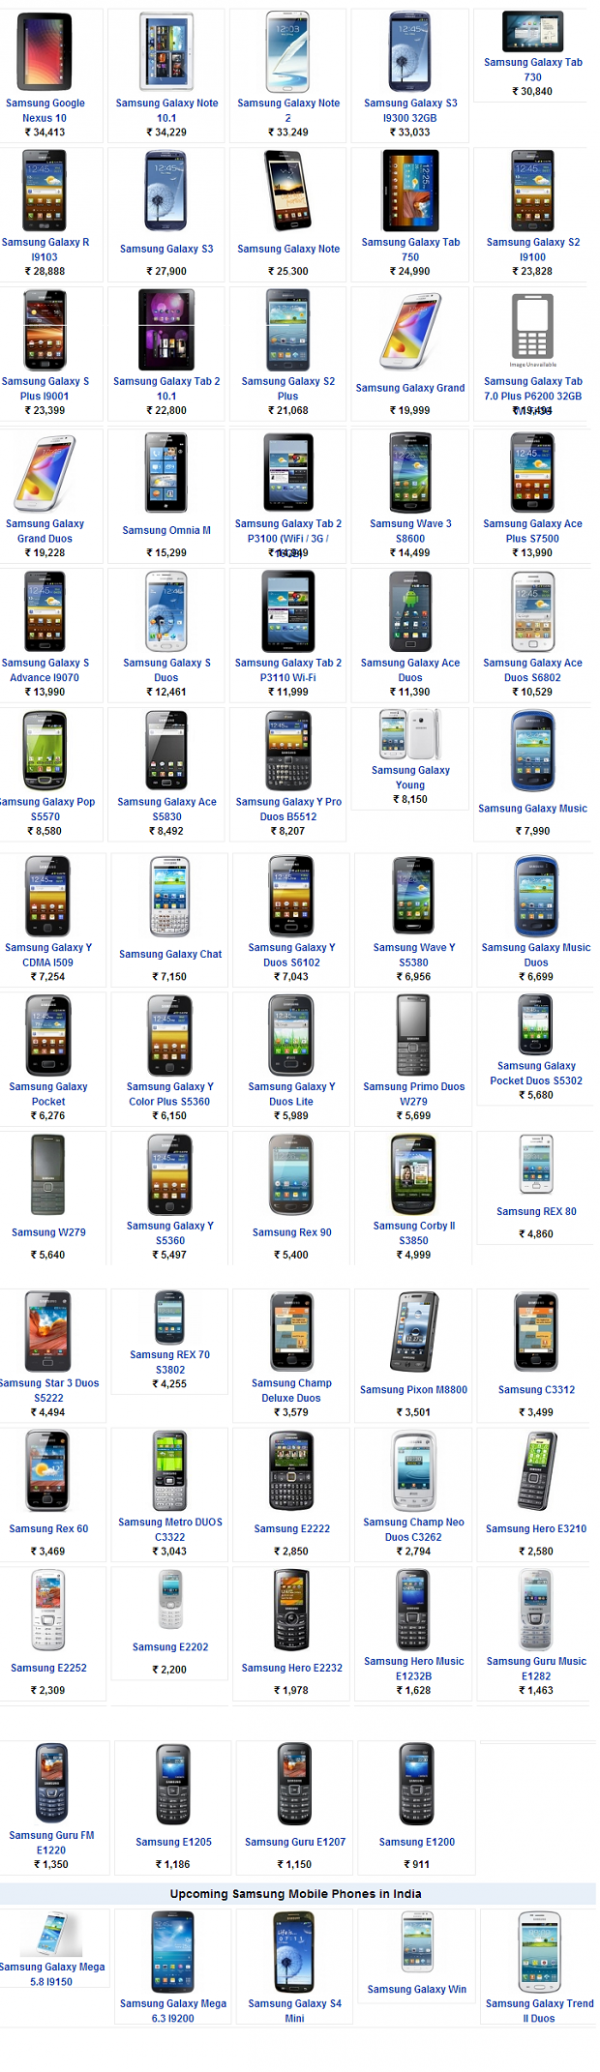 samsung mobile features list